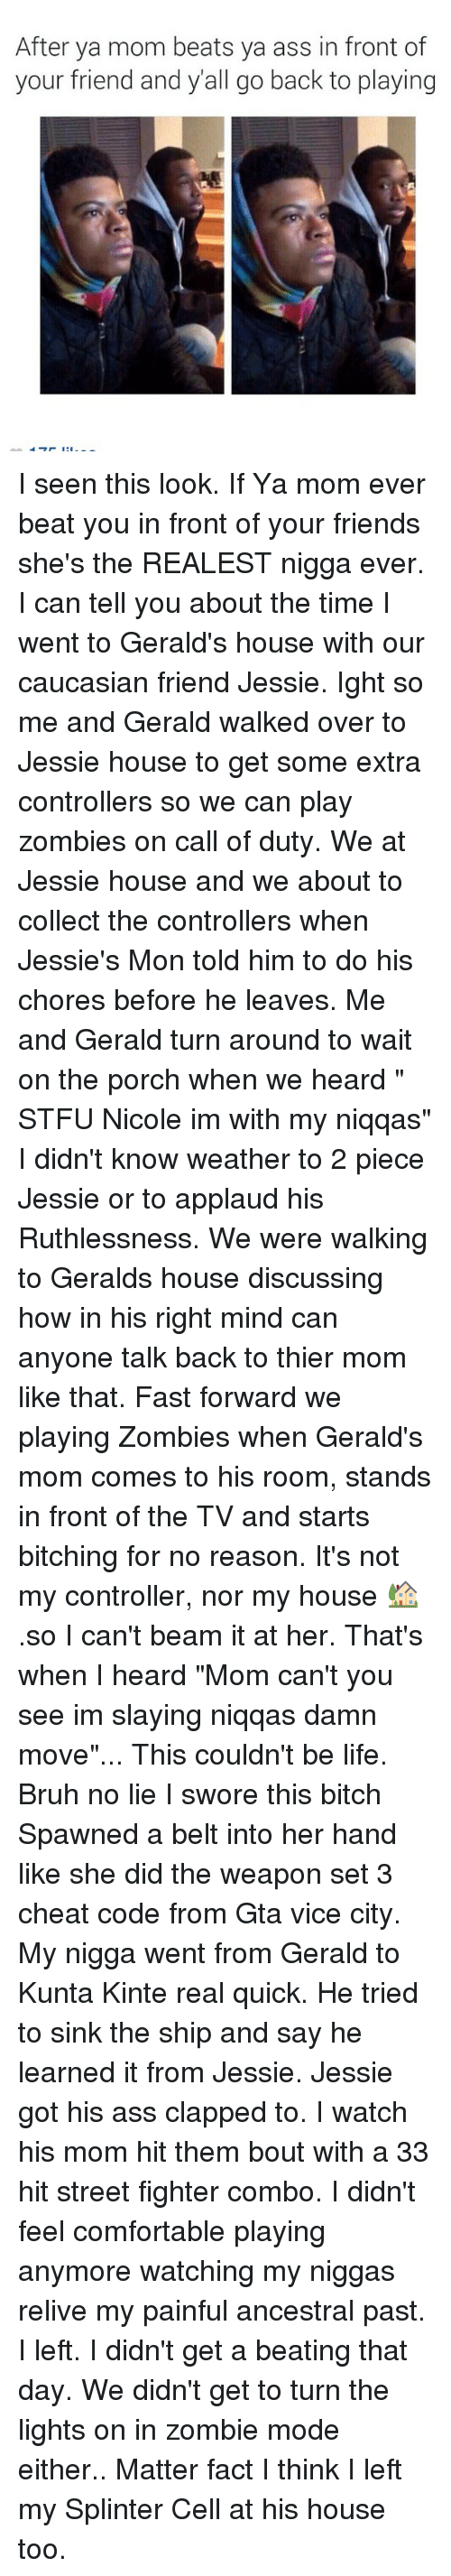 """The Realest Nigga: After ya mom beats ya ass in front of  your friend and yall go back to playing I seen this look. If Ya mom ever beat you in front of your friends she's the REALEST nigga ever. I can tell you about the time I went to Gerald's house with our caucasian friend Jessie. Ight so me and Gerald walked over to Jessie house to get some extra controllers so we can play zombies on call of duty. We at Jessie house and we about to collect the controllers when Jessie's Mon told him to do his chores before he leaves. Me and Gerald turn around to wait on the porch when we heard """" STFU Nicole im with my niqqas"""" I didn't know weather to 2 piece Jessie or to applaud his Ruthlessness. We were walking to Geralds house discussing how in his right mind can anyone talk back to thier mom like that. Fast forward we playing Zombies when Gerald's mom comes to his room, stands in front of the TV and starts bitching for no reason. It's not my controller, nor my house 🏡 .so I can't beam it at her. That's when I heard """"Mom can't you see im slaying niqqas damn move""""... This couldn't be life. Bruh no lie I swore this bitch Spawned a belt into her hand like she did the weapon set 3 cheat code from Gta vice city. My nigga went from Gerald to Kunta Kinte real quick. He tried to sink the ship and say he learned it from Jessie. Jessie got his ass clapped to. I watch his mom hit them bout with a 33 hit street fighter combo. I didn't feel comfortable playing anymore watching my niggas relive my painful ancestral past. I left. I didn't get a beating that day. We didn't get to turn the lights on in zombie mode either.. Matter fact I think I left my Splinter Cell at his house too."""